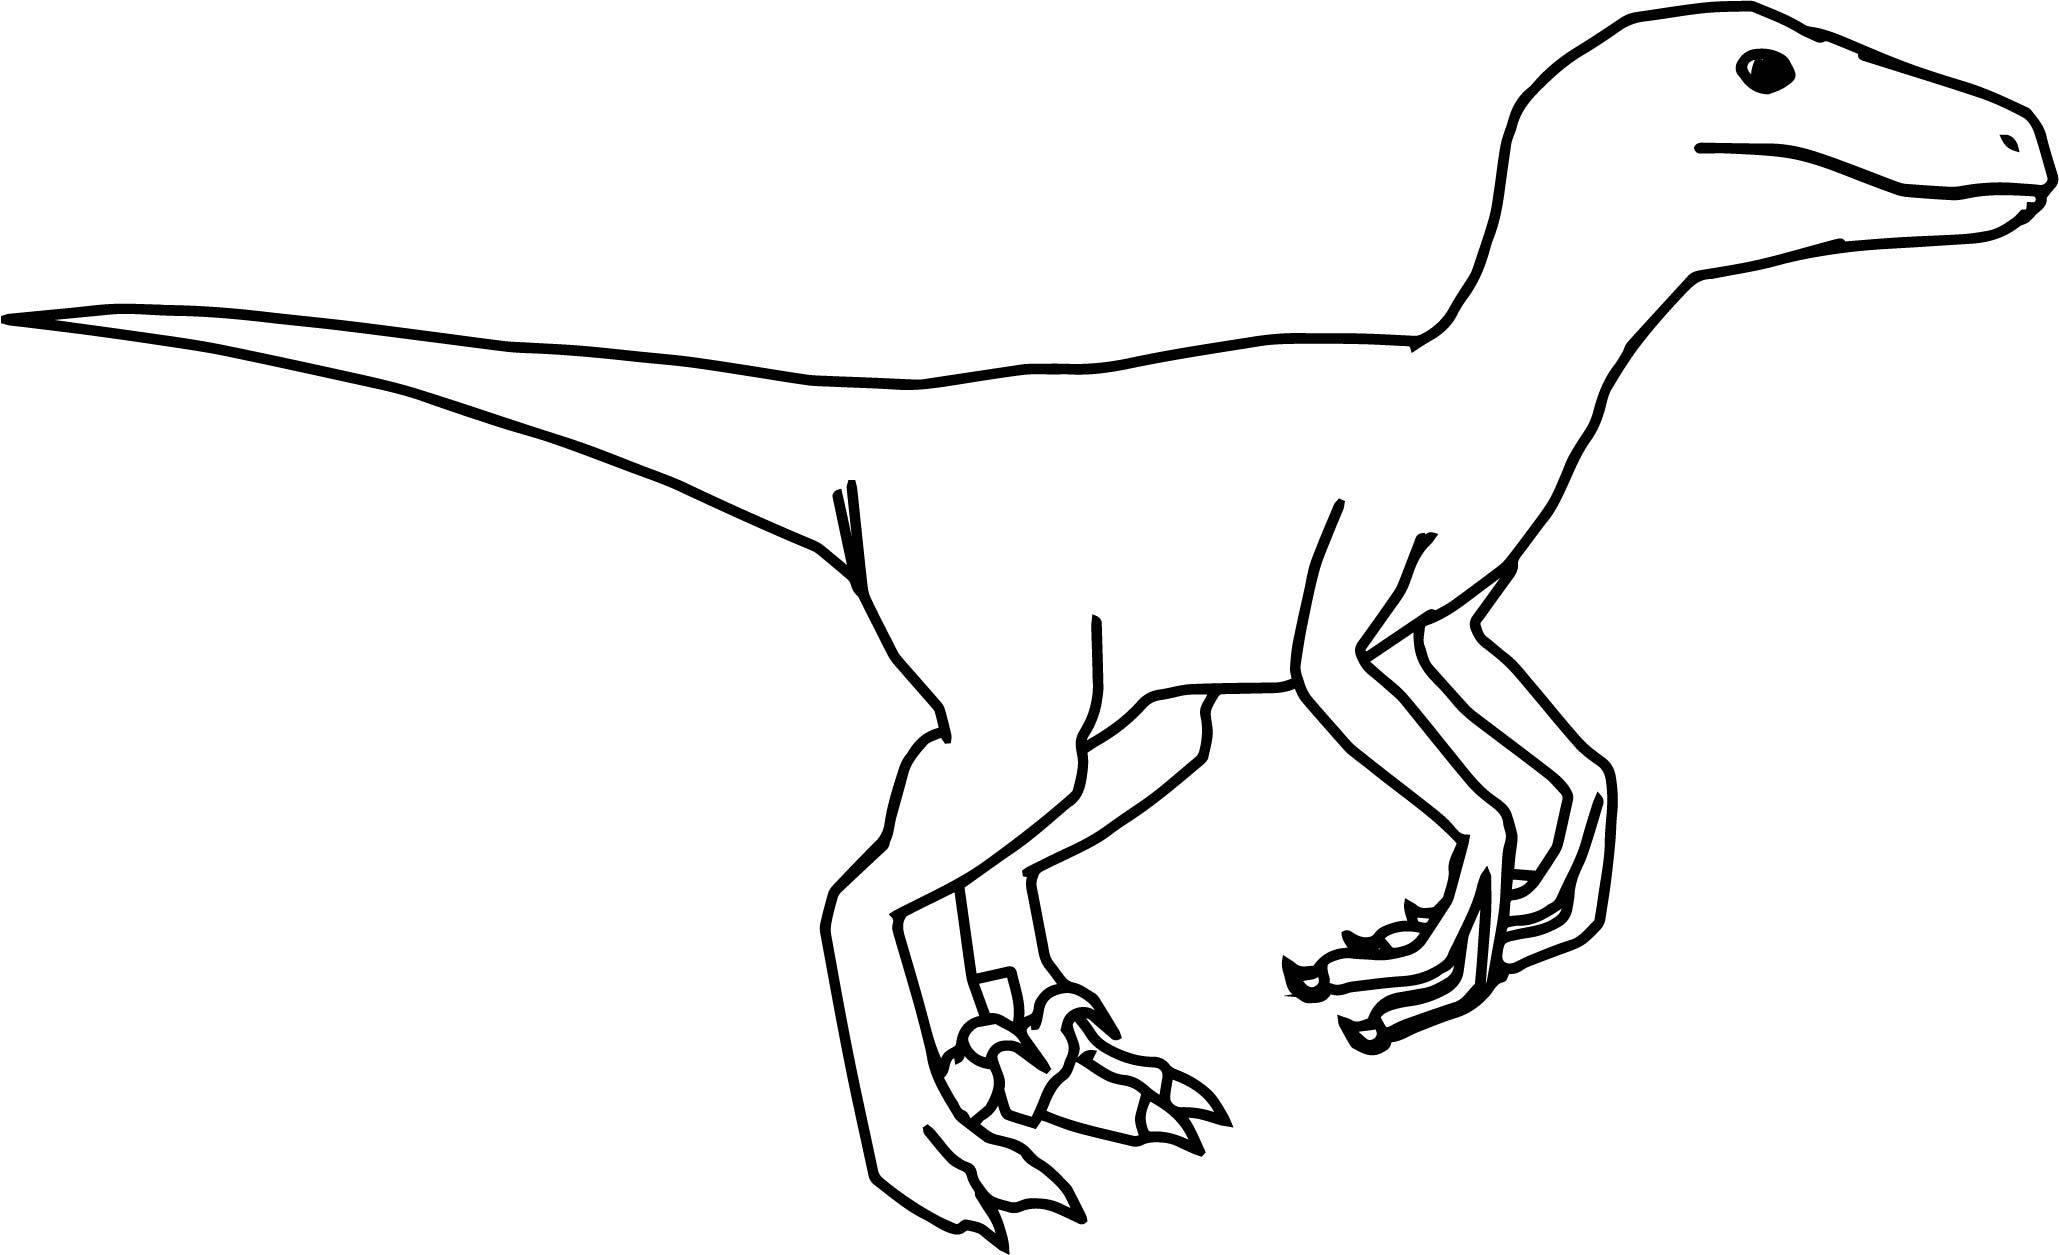 10 Coloring Page Velociraptor In 2020 Velociraptor Drawing Coloring Pages Blue Jurassic World